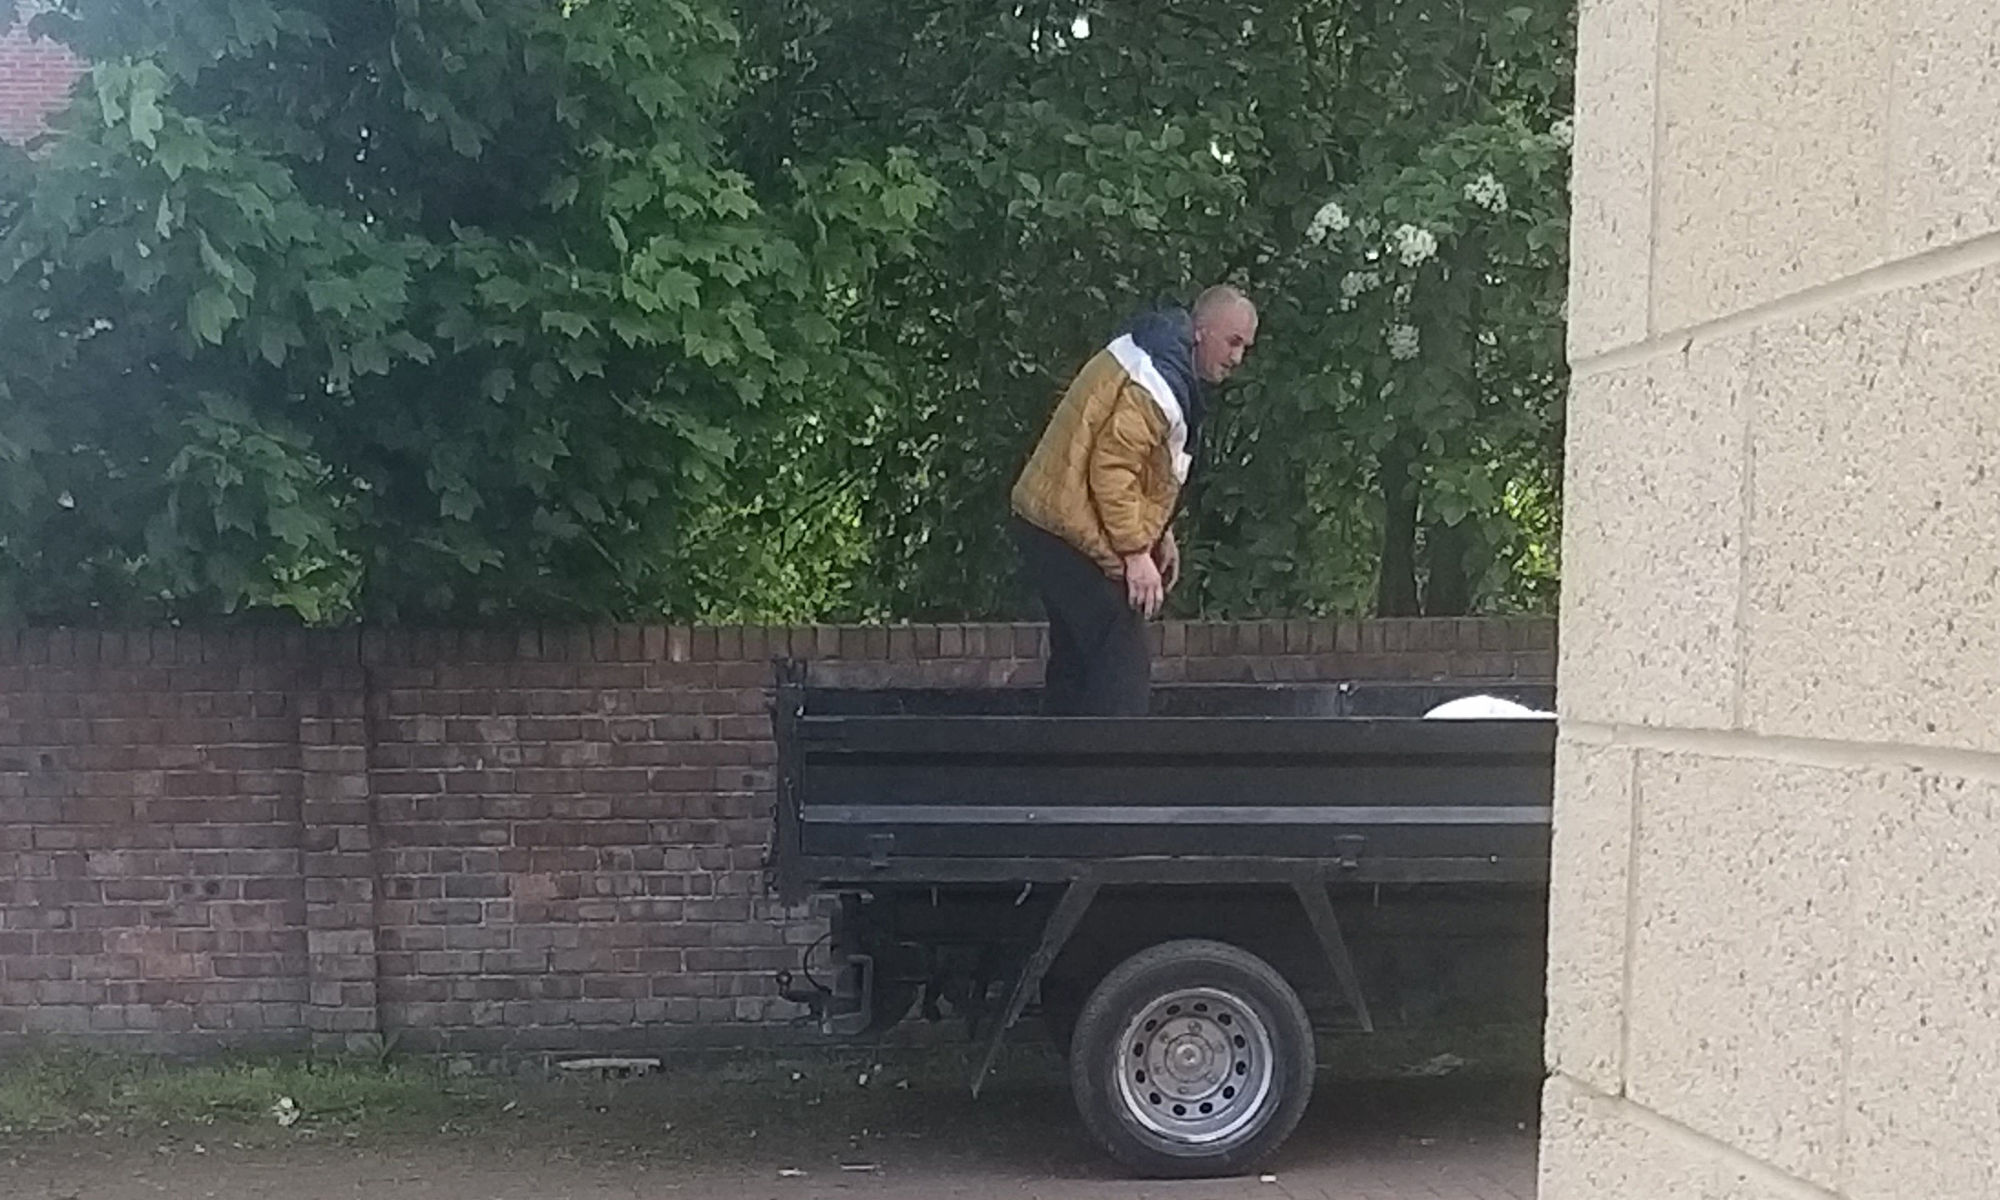 A photo of a suspected fly-tipper on Marton Road